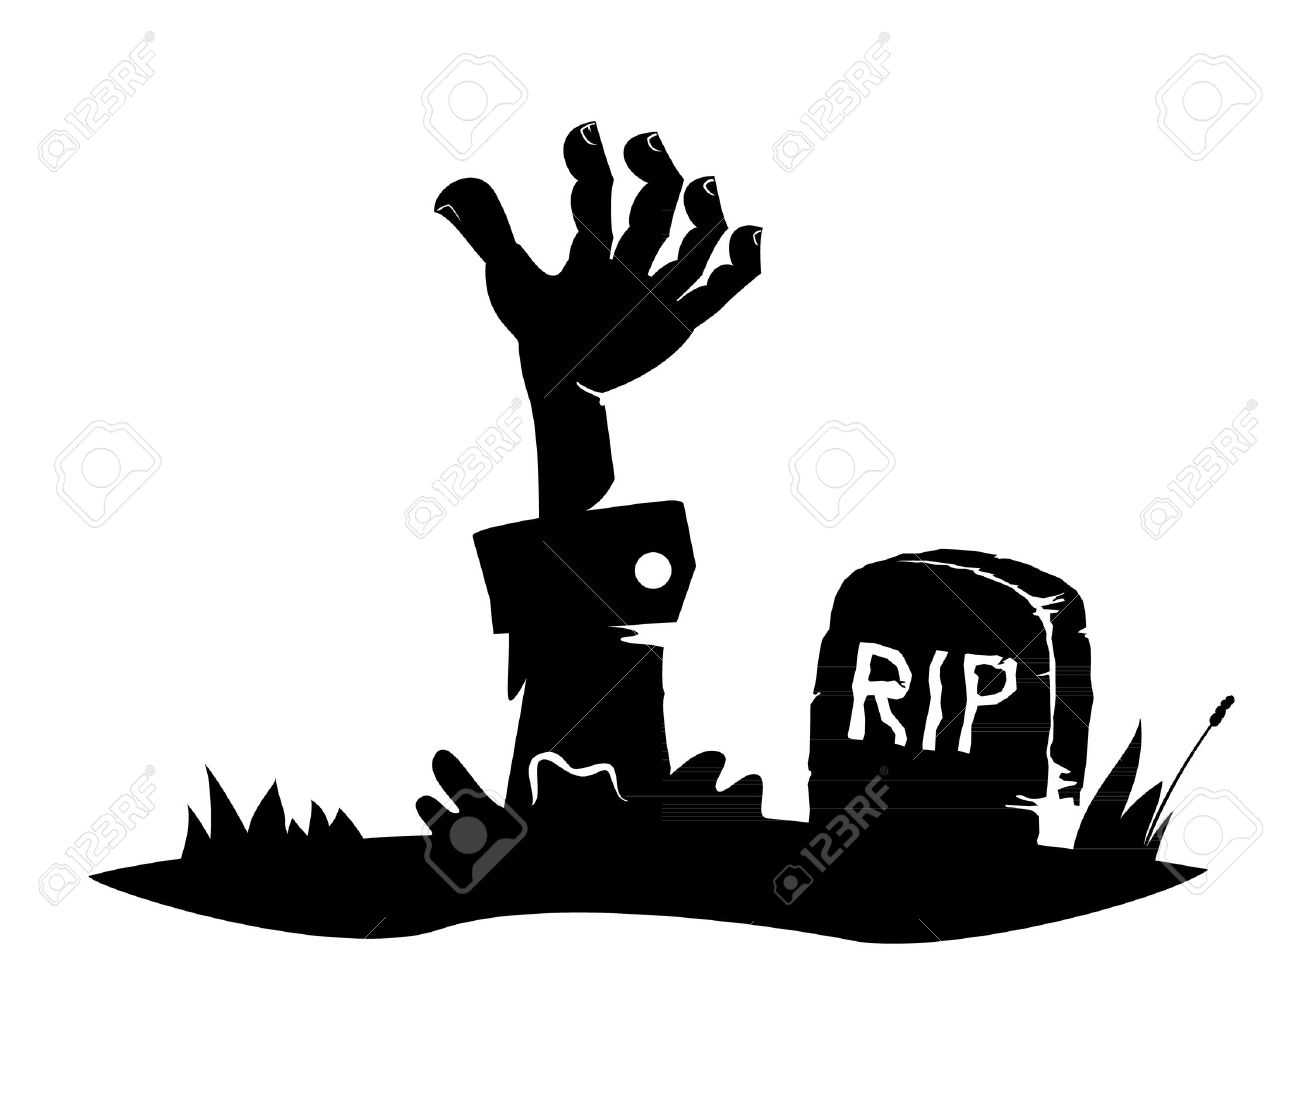 Hand reaching from the grave, simple drawing, icon - 20654236